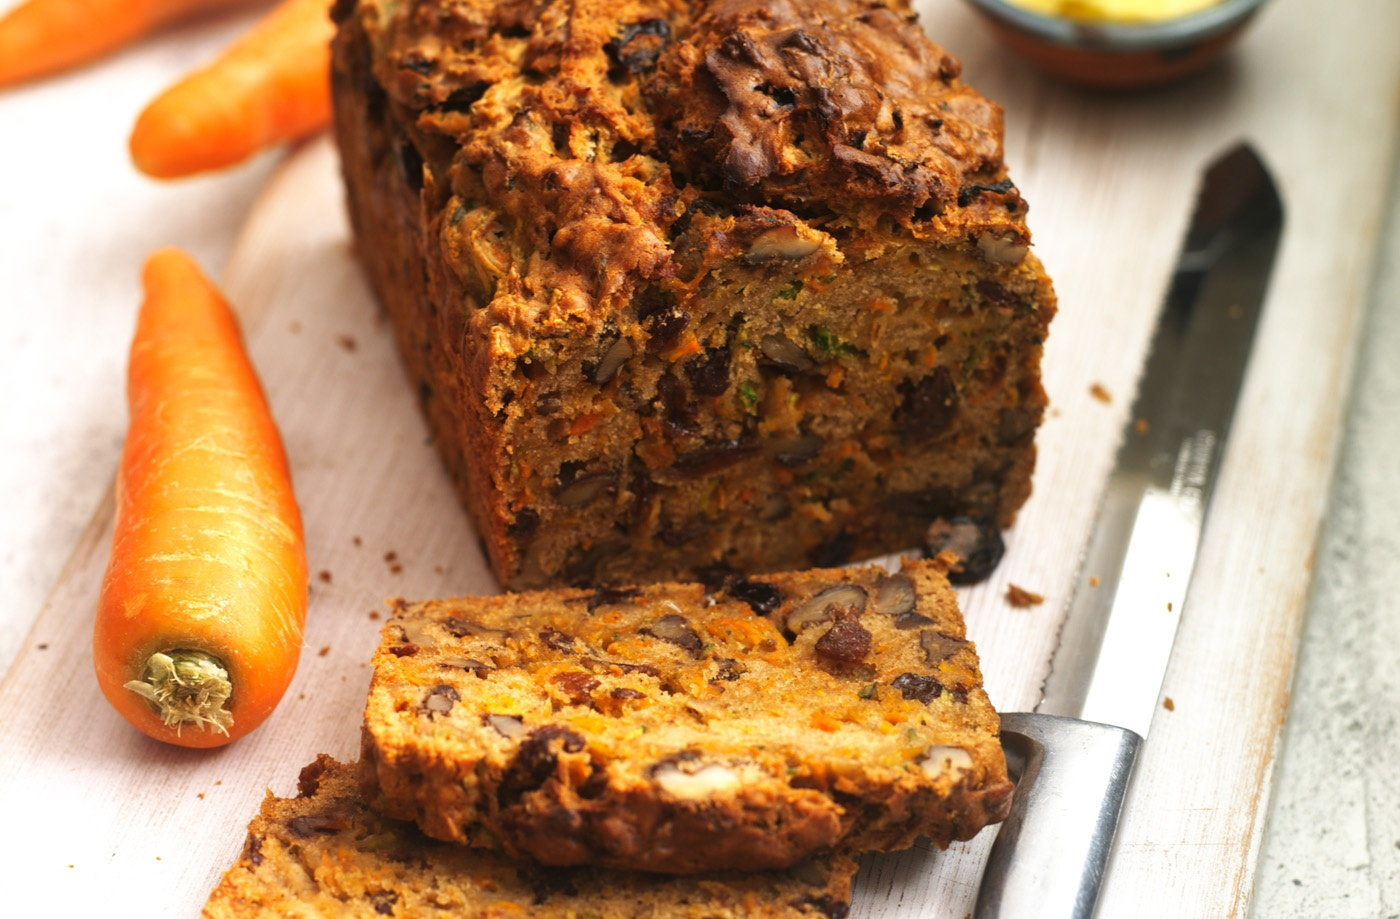 Tesco Vegan Carrot Cake